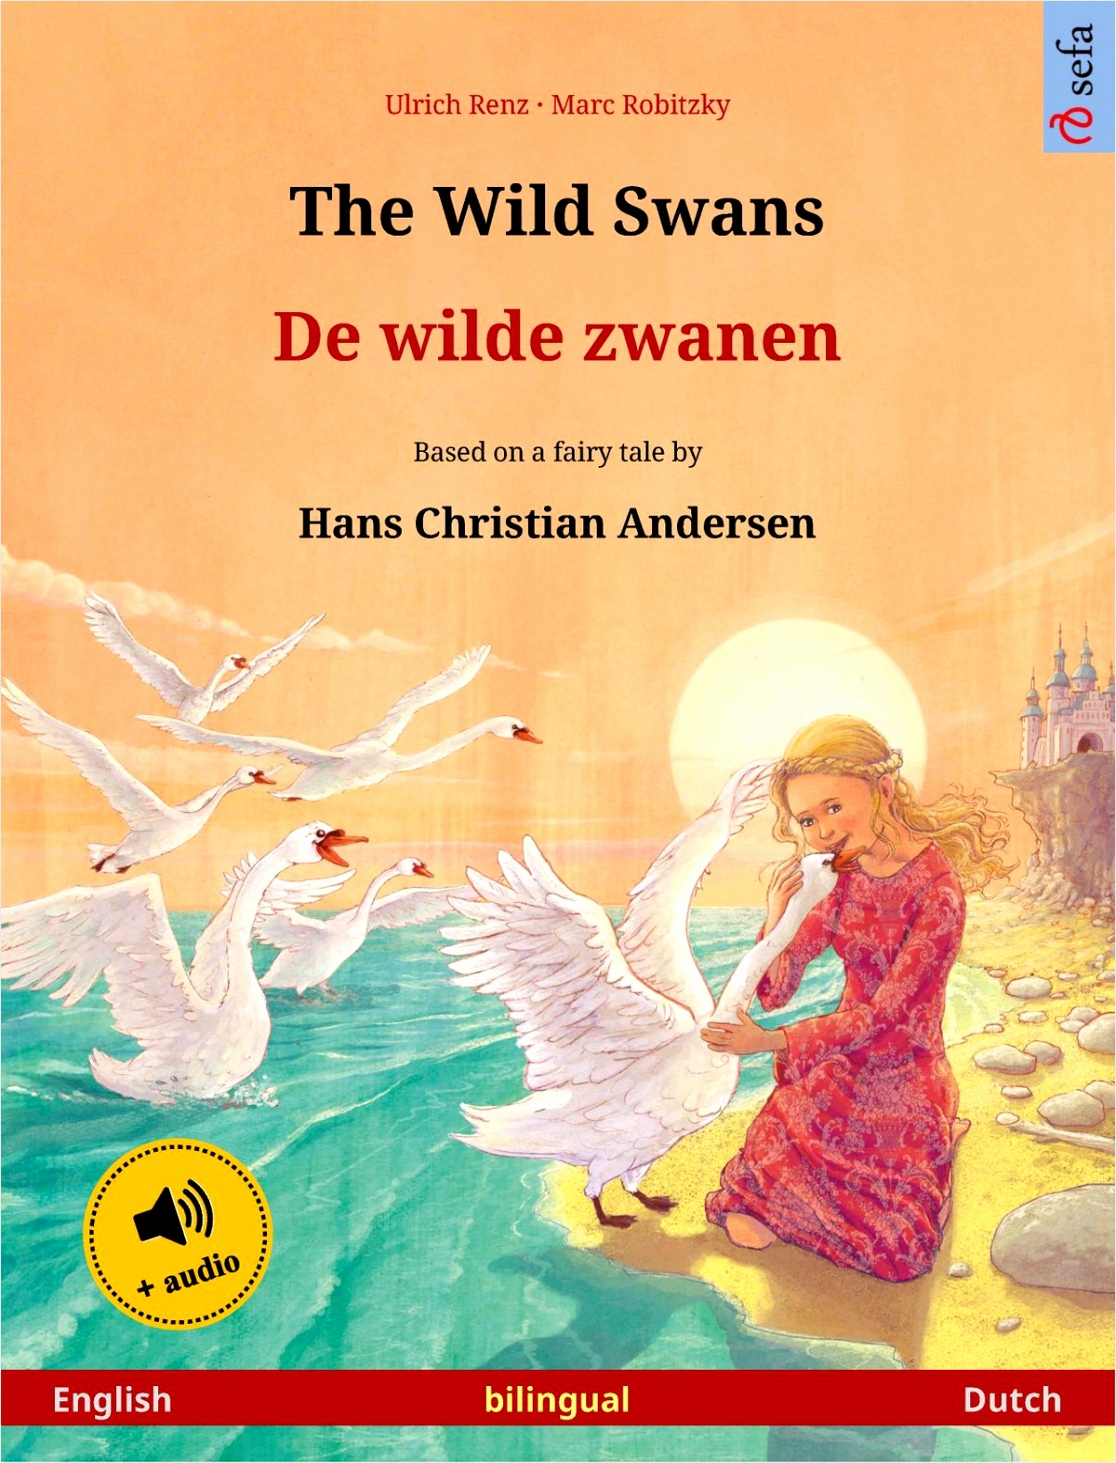 the wild swans de wilde zwanen english dutch bilingual children s book based on a fairy tale by hans christian andersen age 4 5 and up with audiobook for iprap